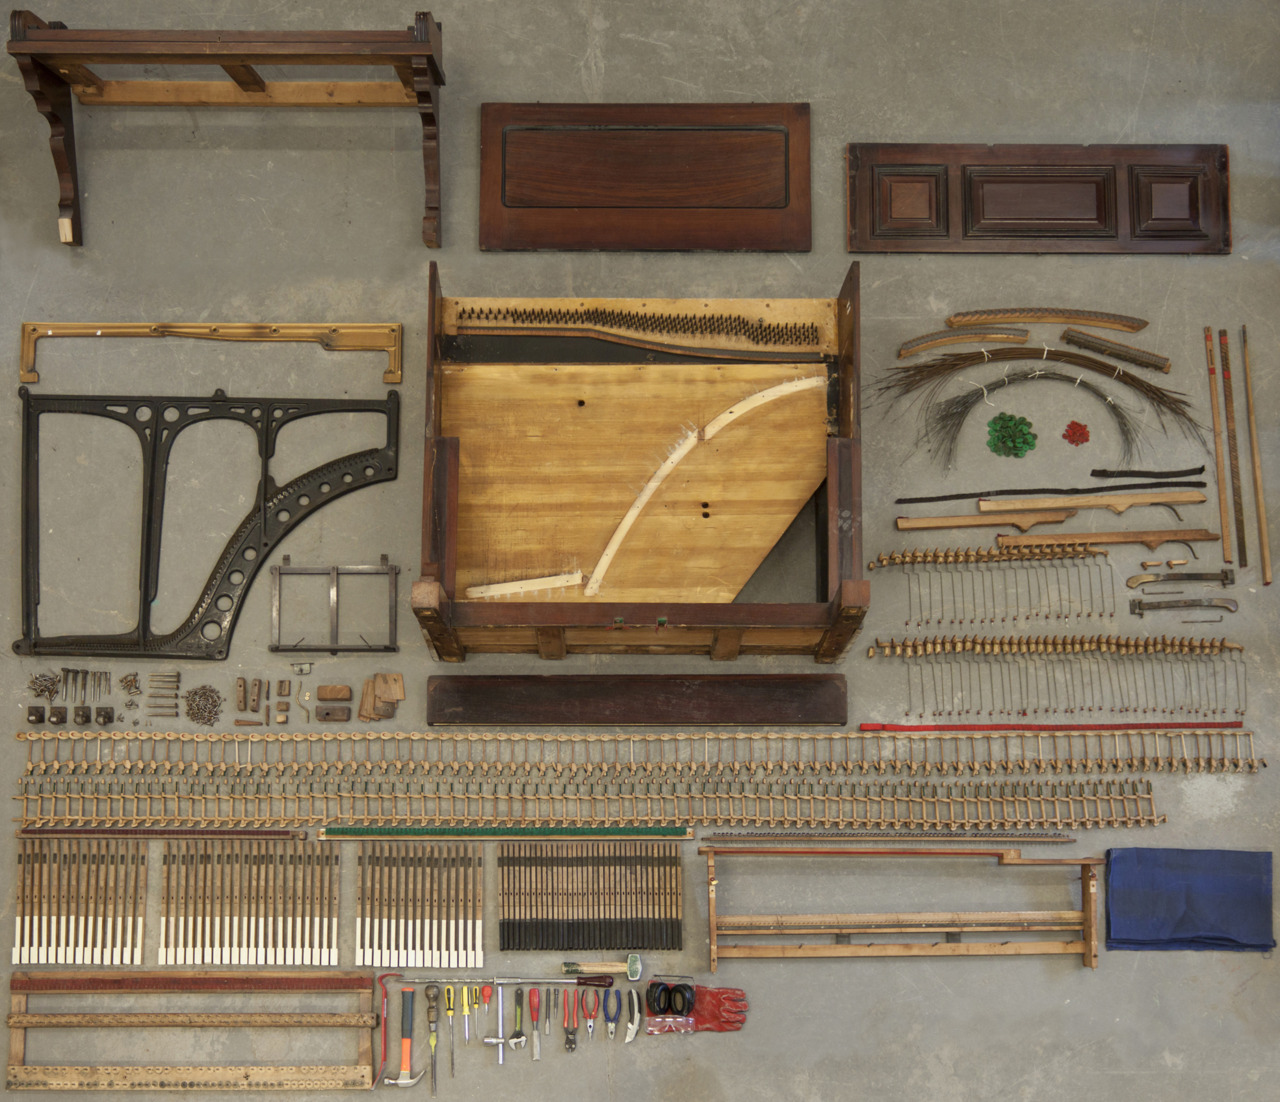 Disassembled Upright Piano